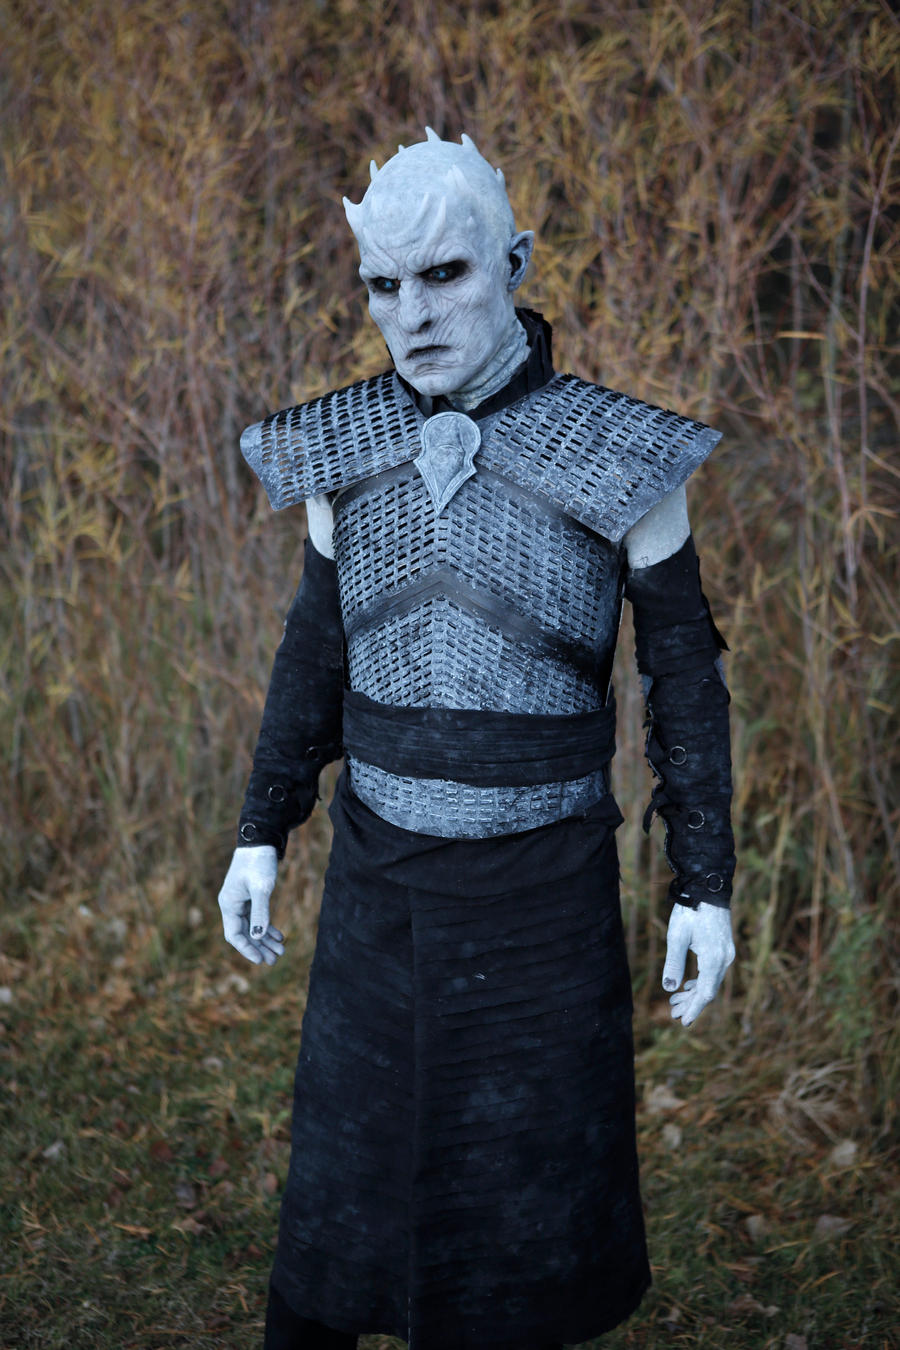 The Night's King: Two